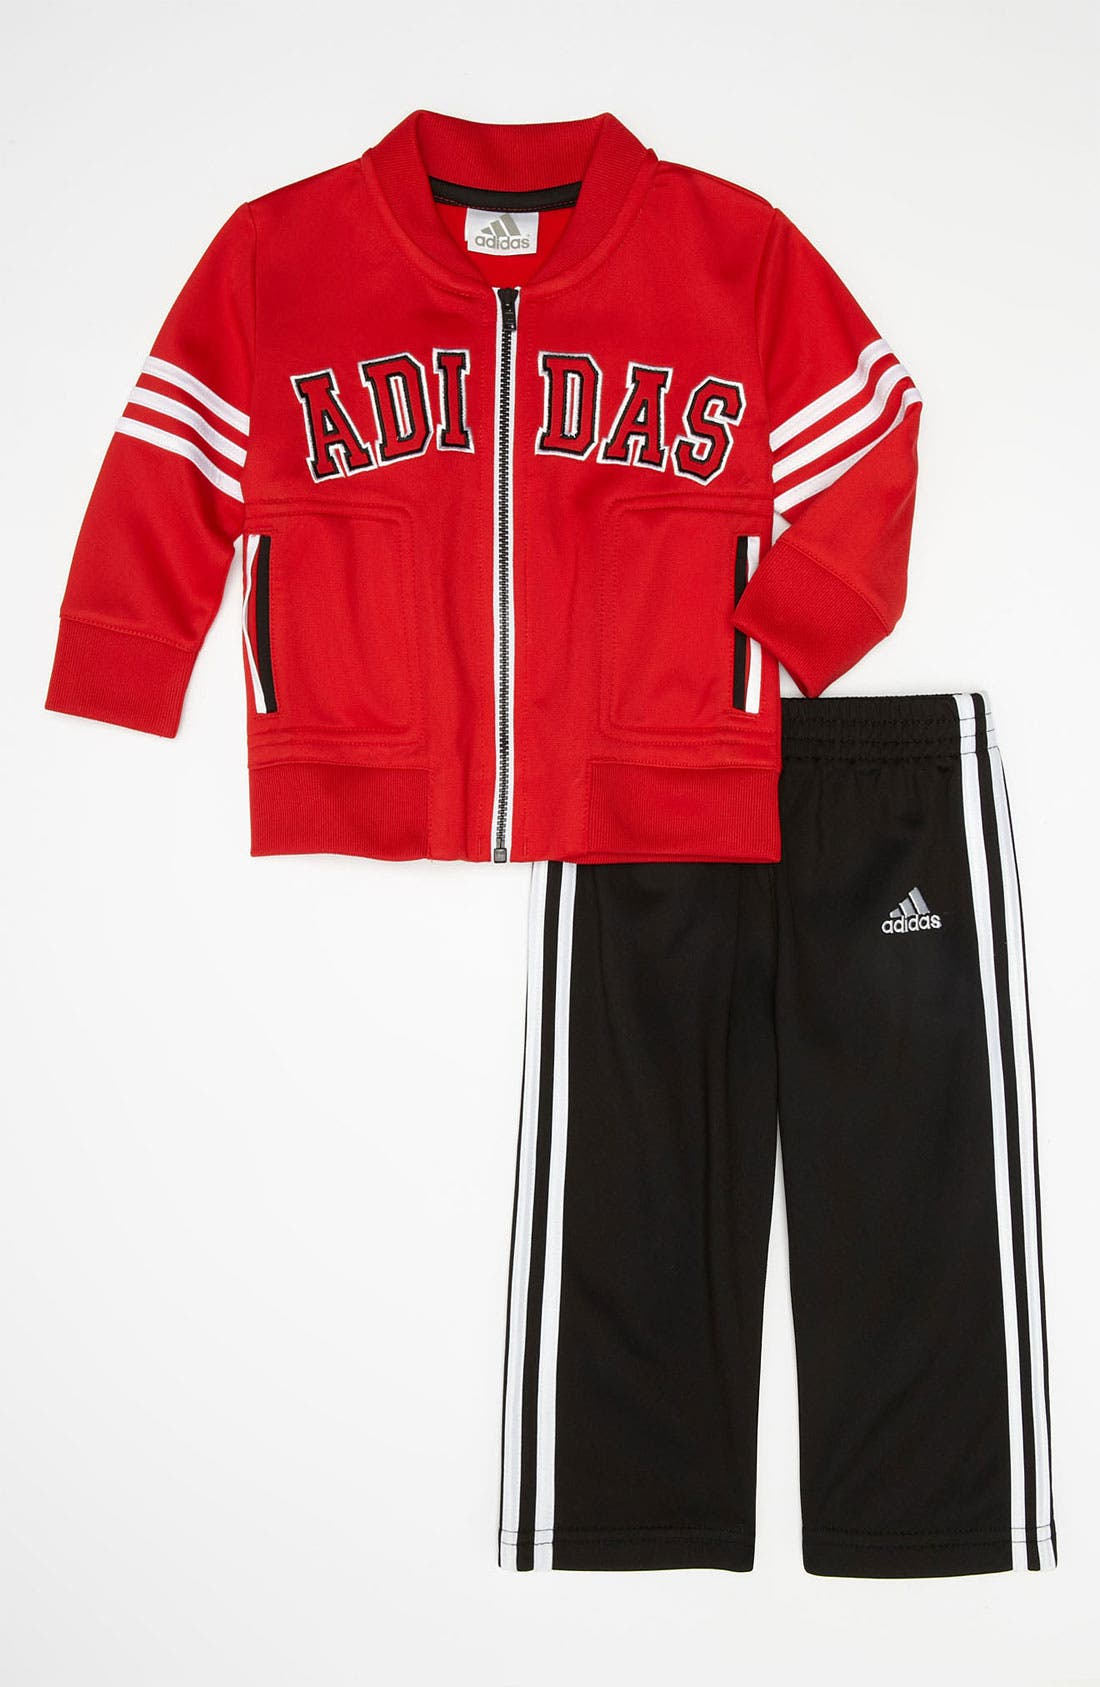 Alternate Image 1 Selected - adidas 'Team' Jacket & Pants (Toddler)